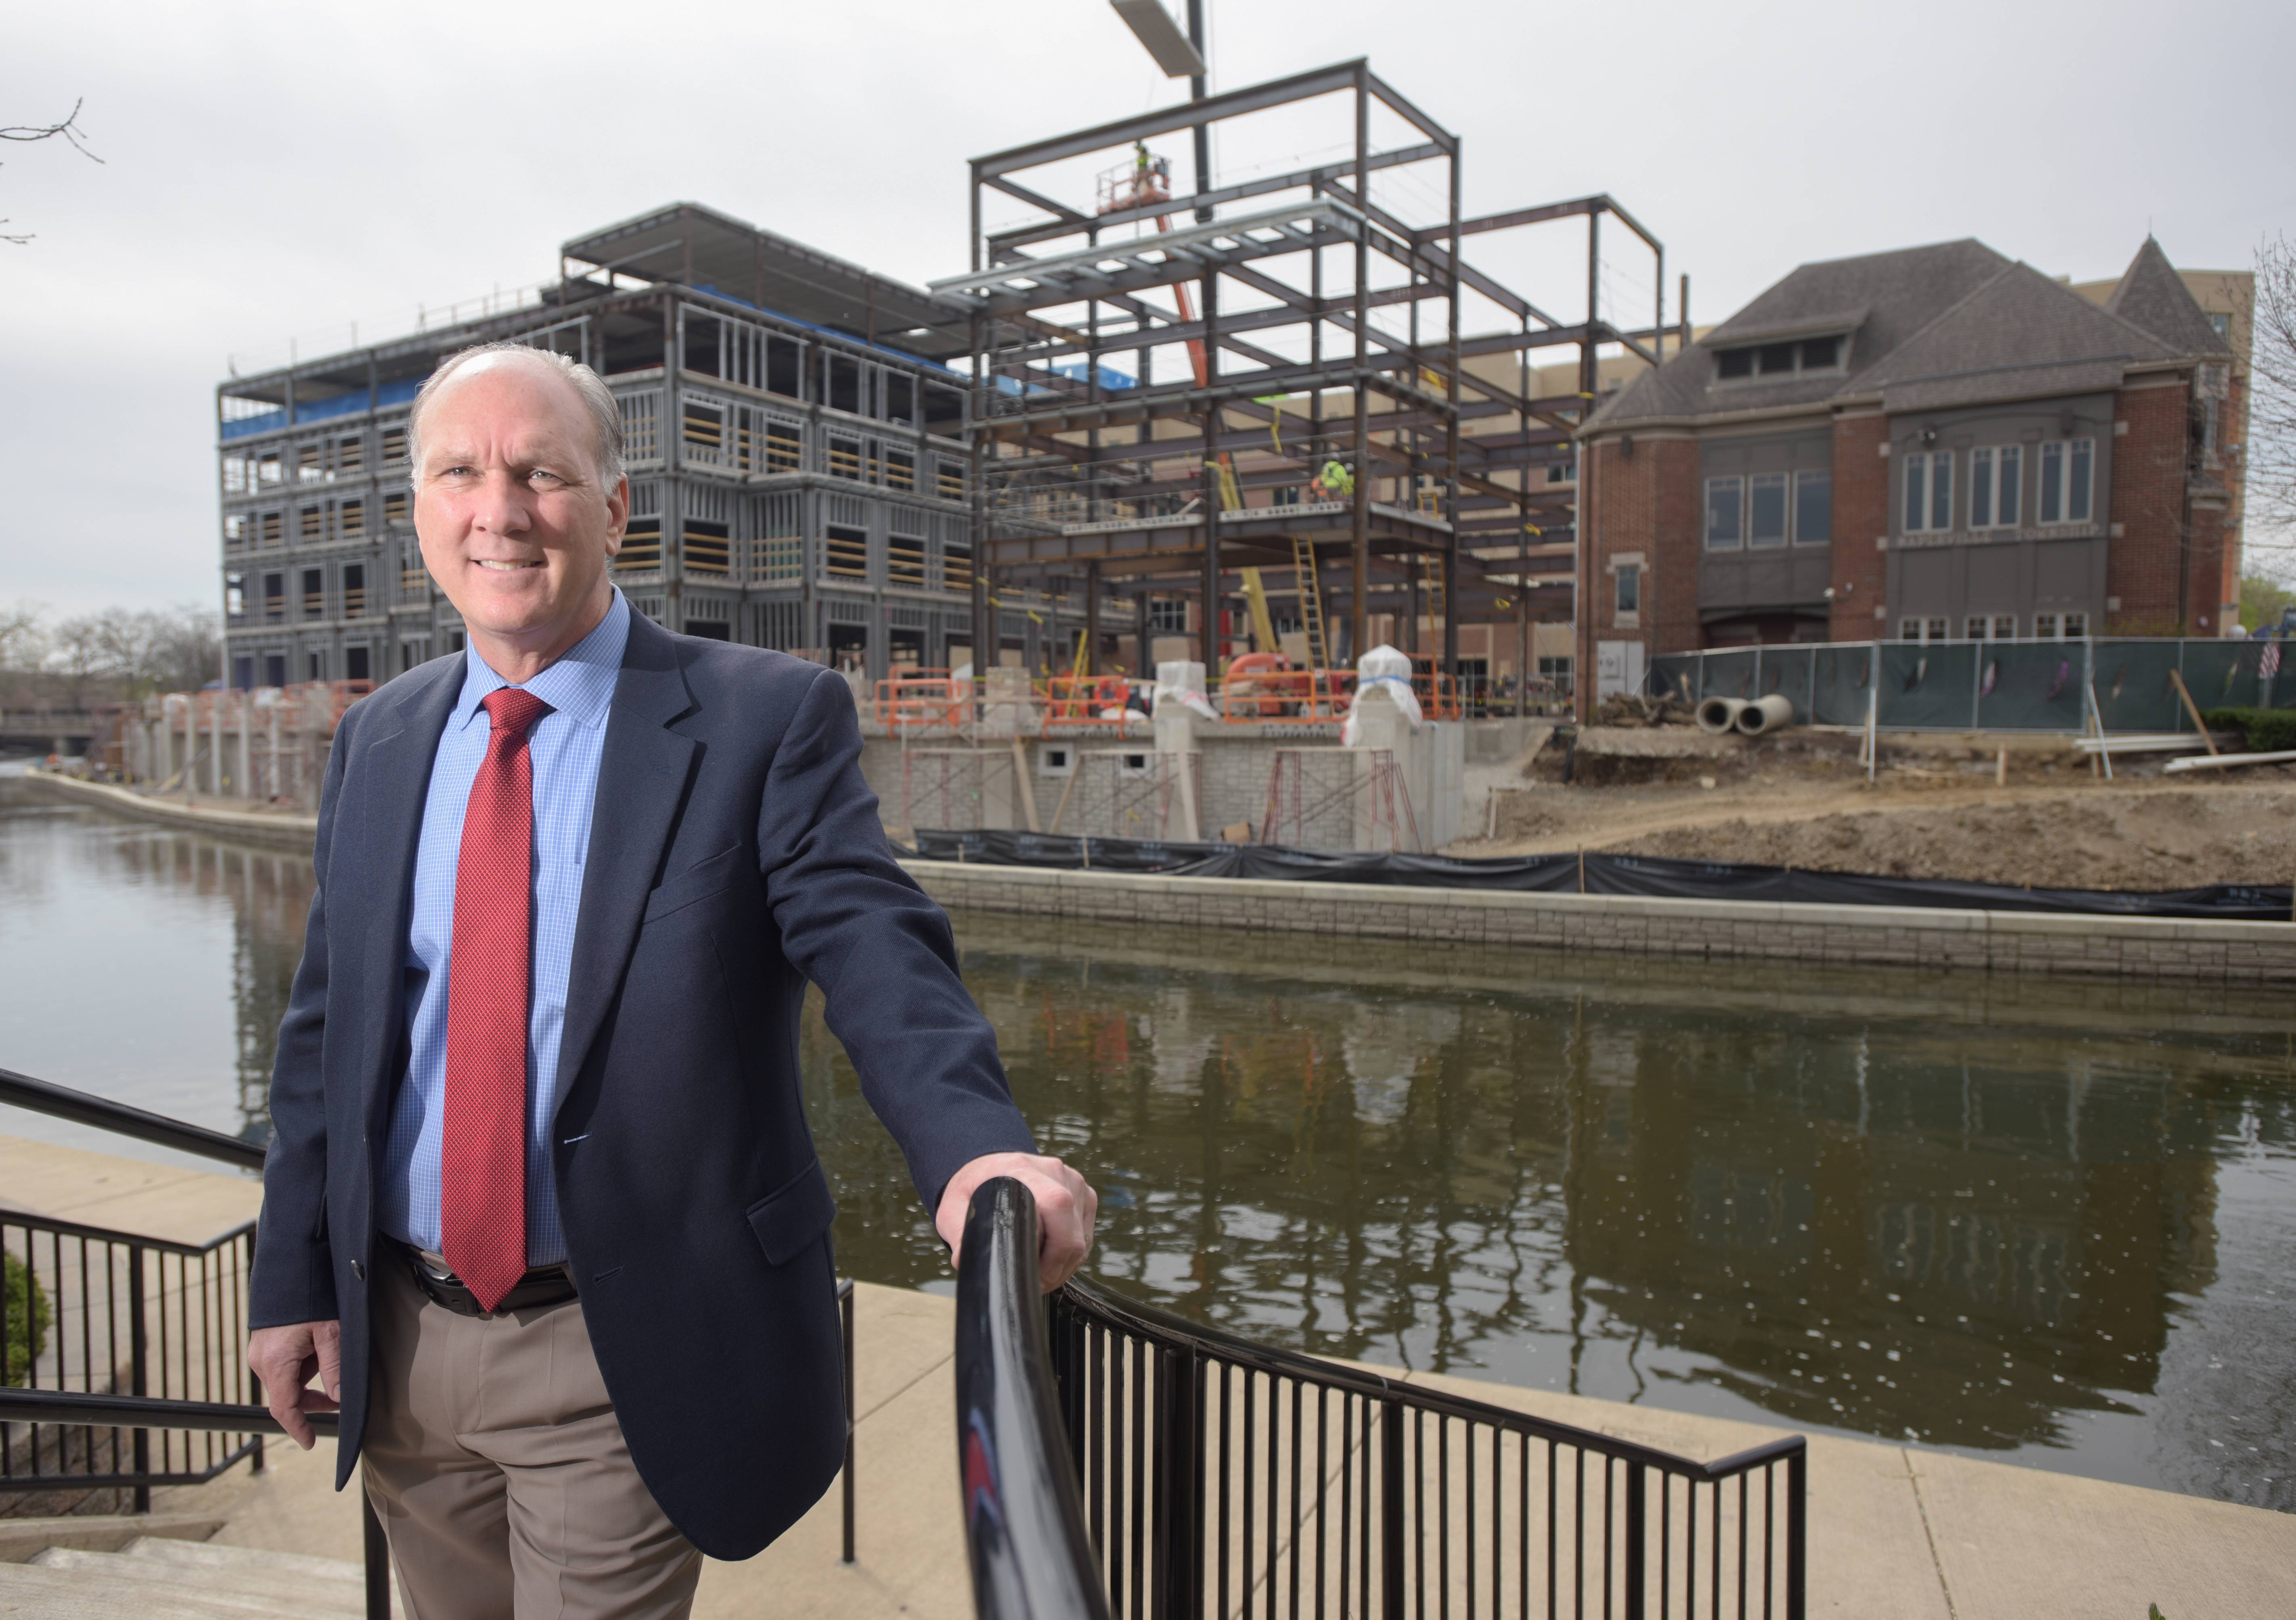 Naperville mayor foretells future of 'bold, daring' innovation